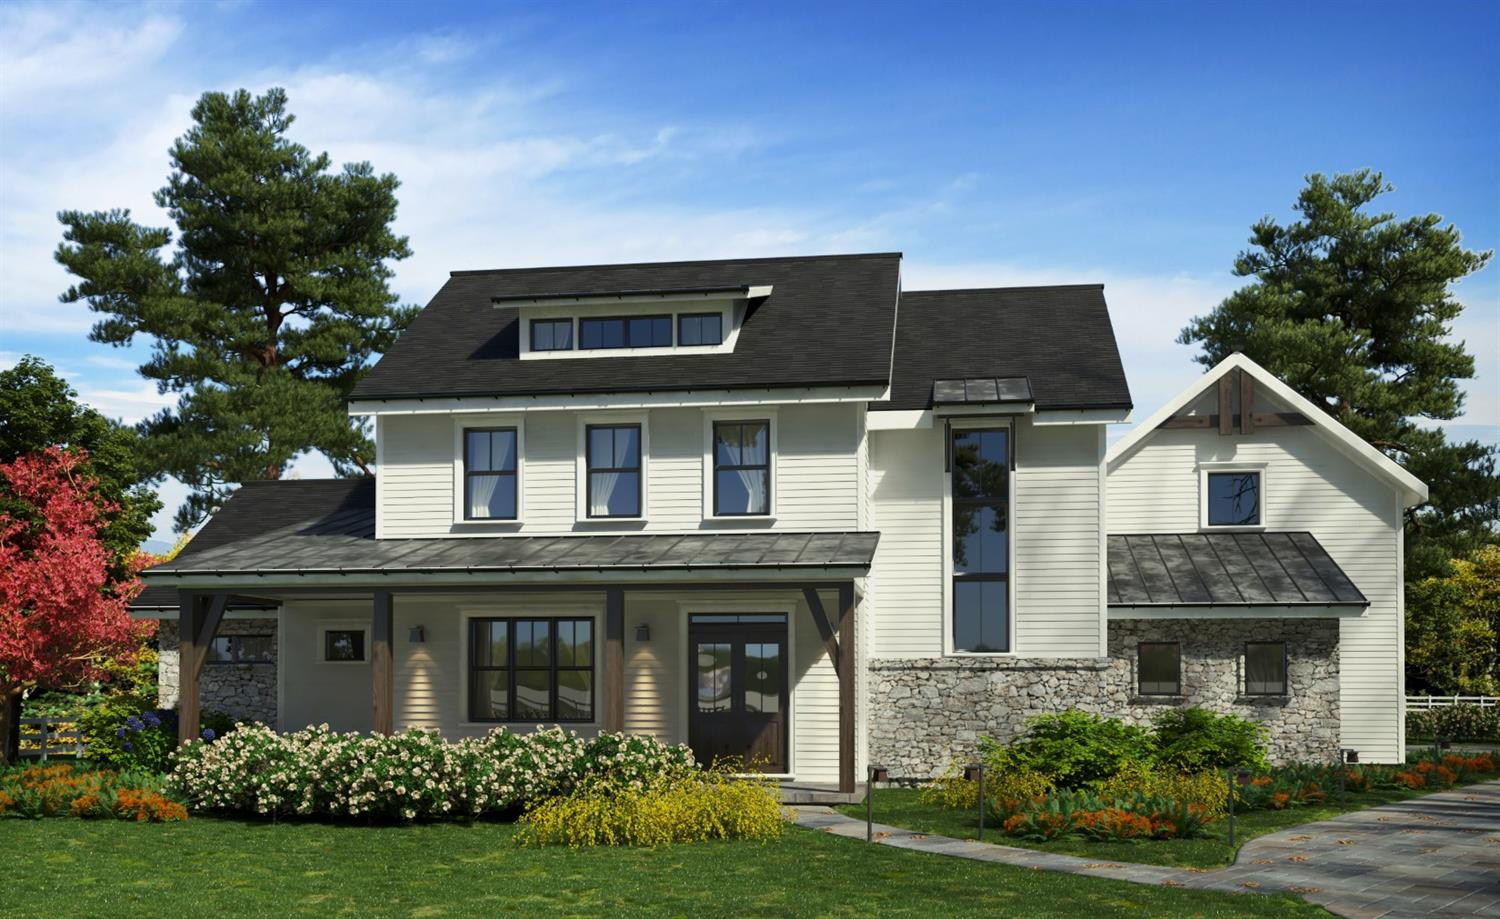 HOMEARAMA 2018!The Sterling Twist on Modern Farm House Living w/ attention to EVERY detail! 6500 Ft. carefully crafted 1st flr mstr home featuring striking window wall, brick interior accents, open & airy kitchen and massive covered and uncovered veranda! Finished basement w/ bar, private 1161 ft. guest suite above garage, 3 car garage, cul-de-sac.